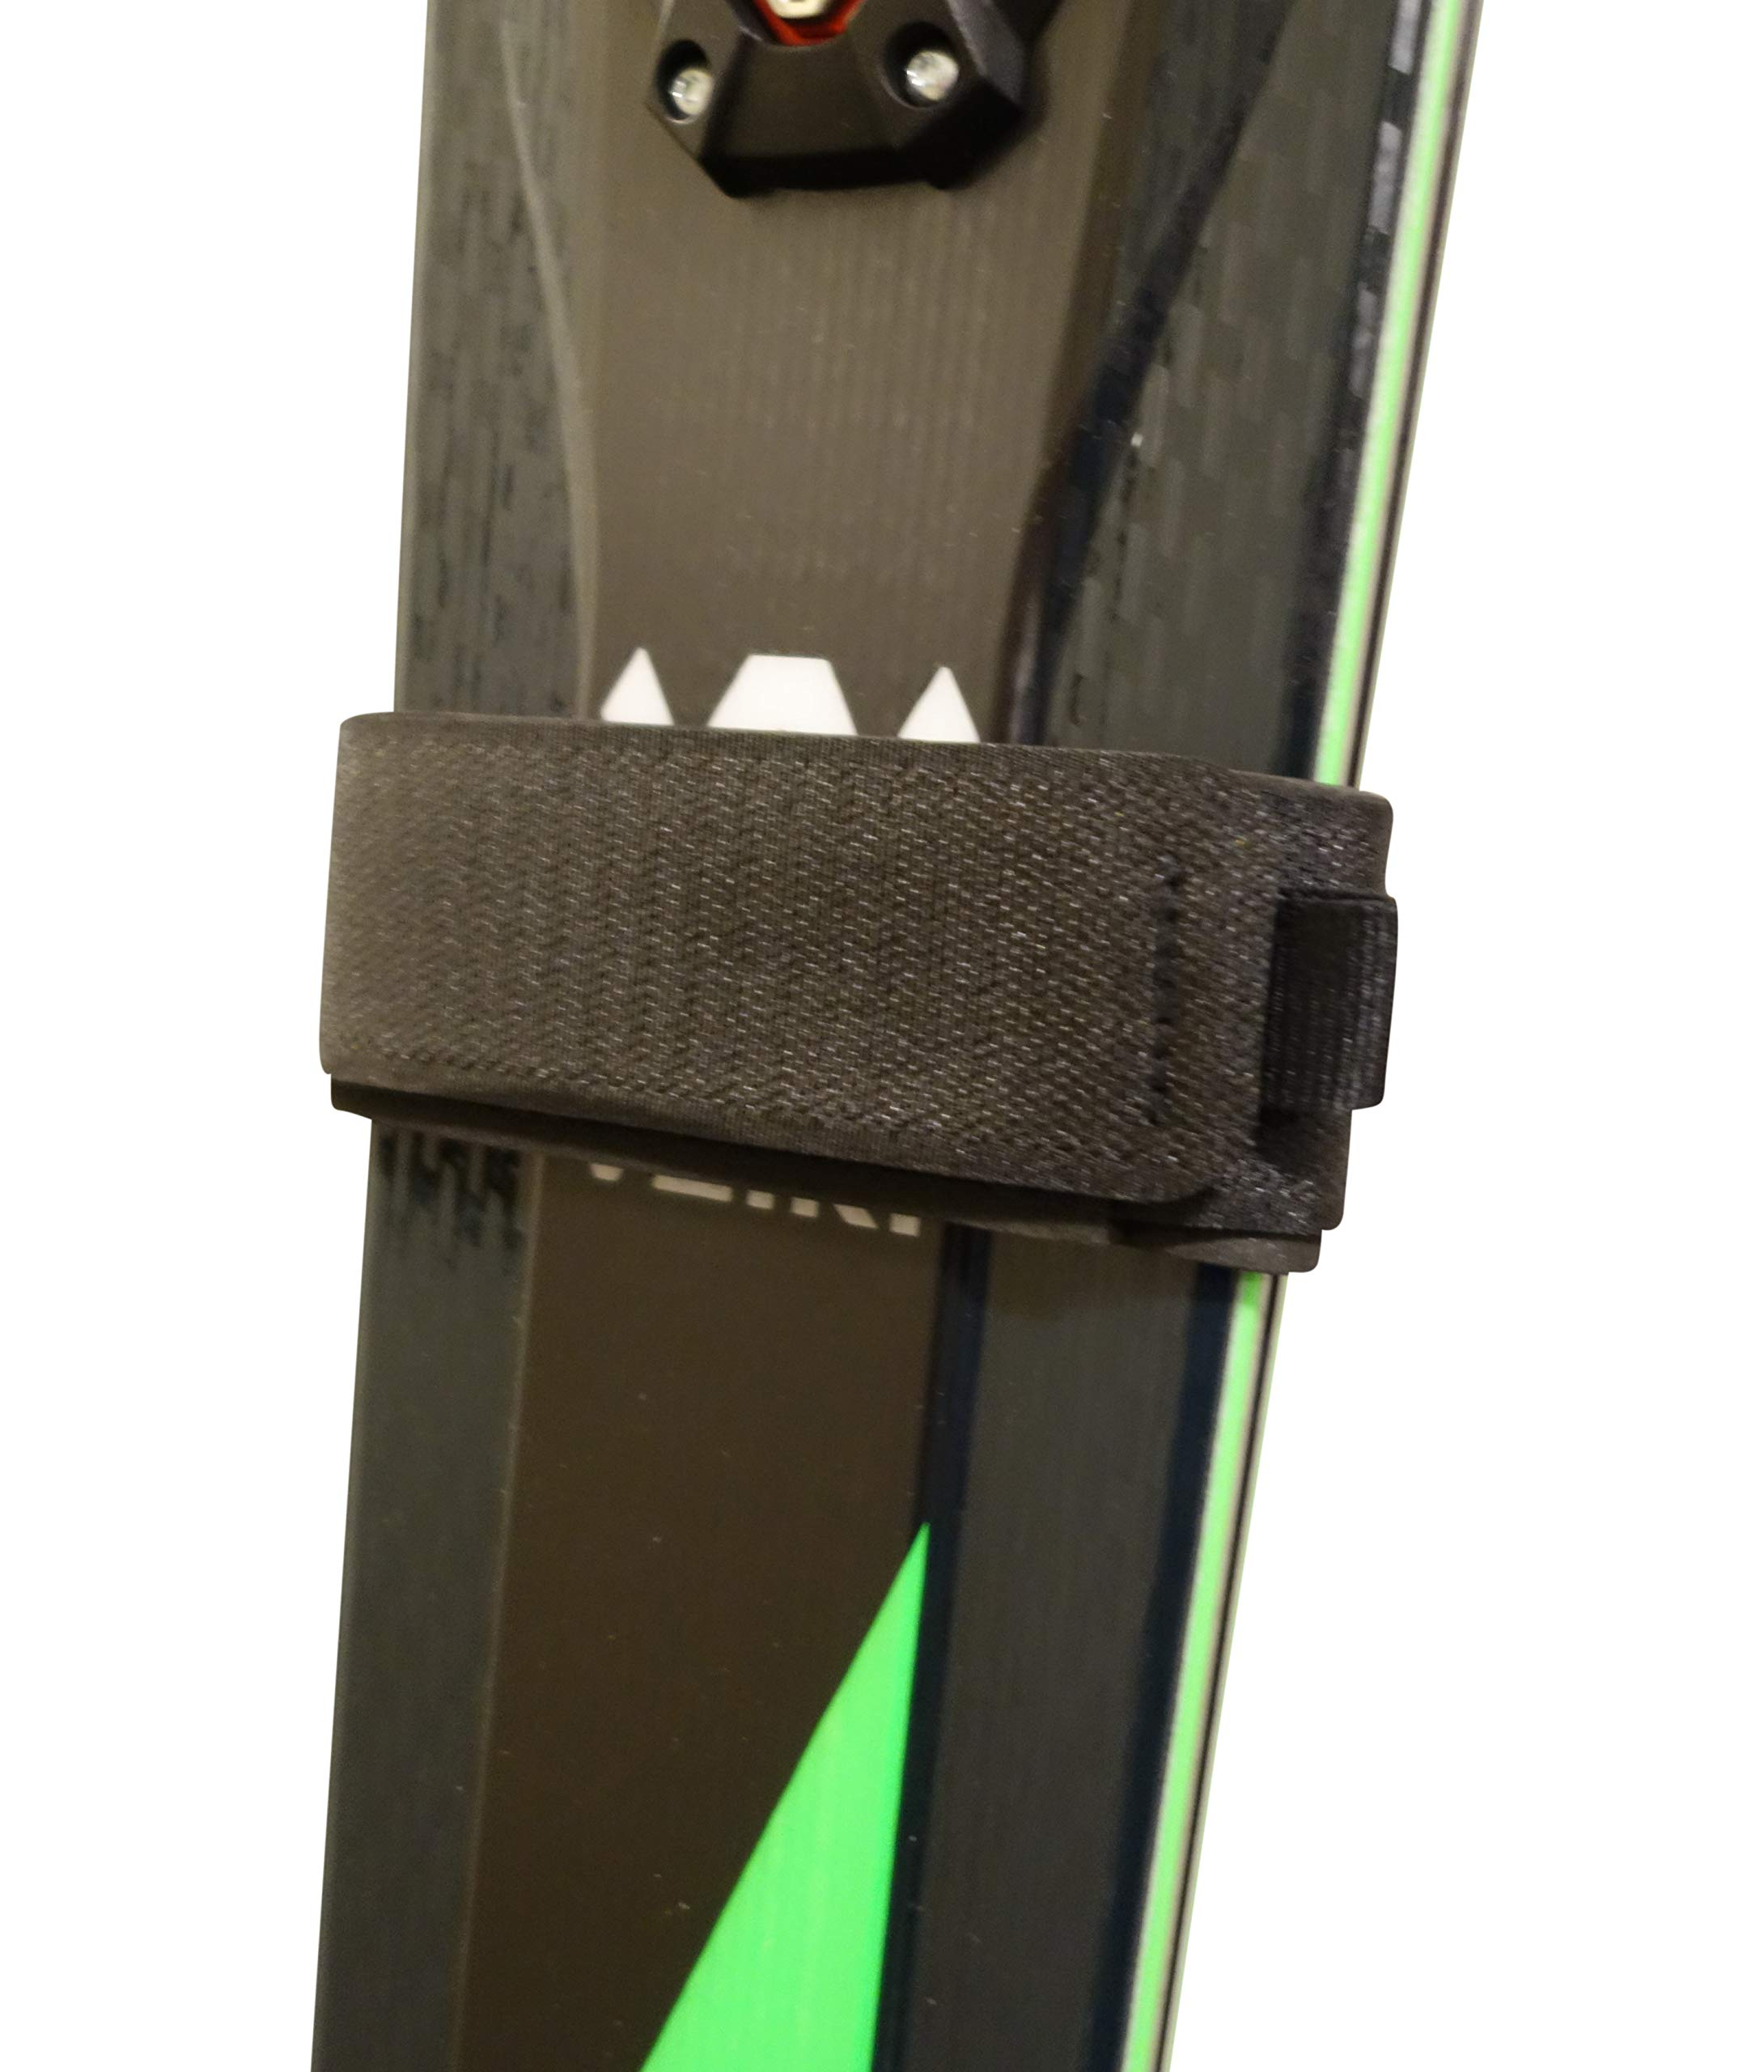 Mt Sun Gear Ski Wraps Hook and Loop ski Straps for Race, Powder, Fat skis. 2 Per Pack. Light Strong.